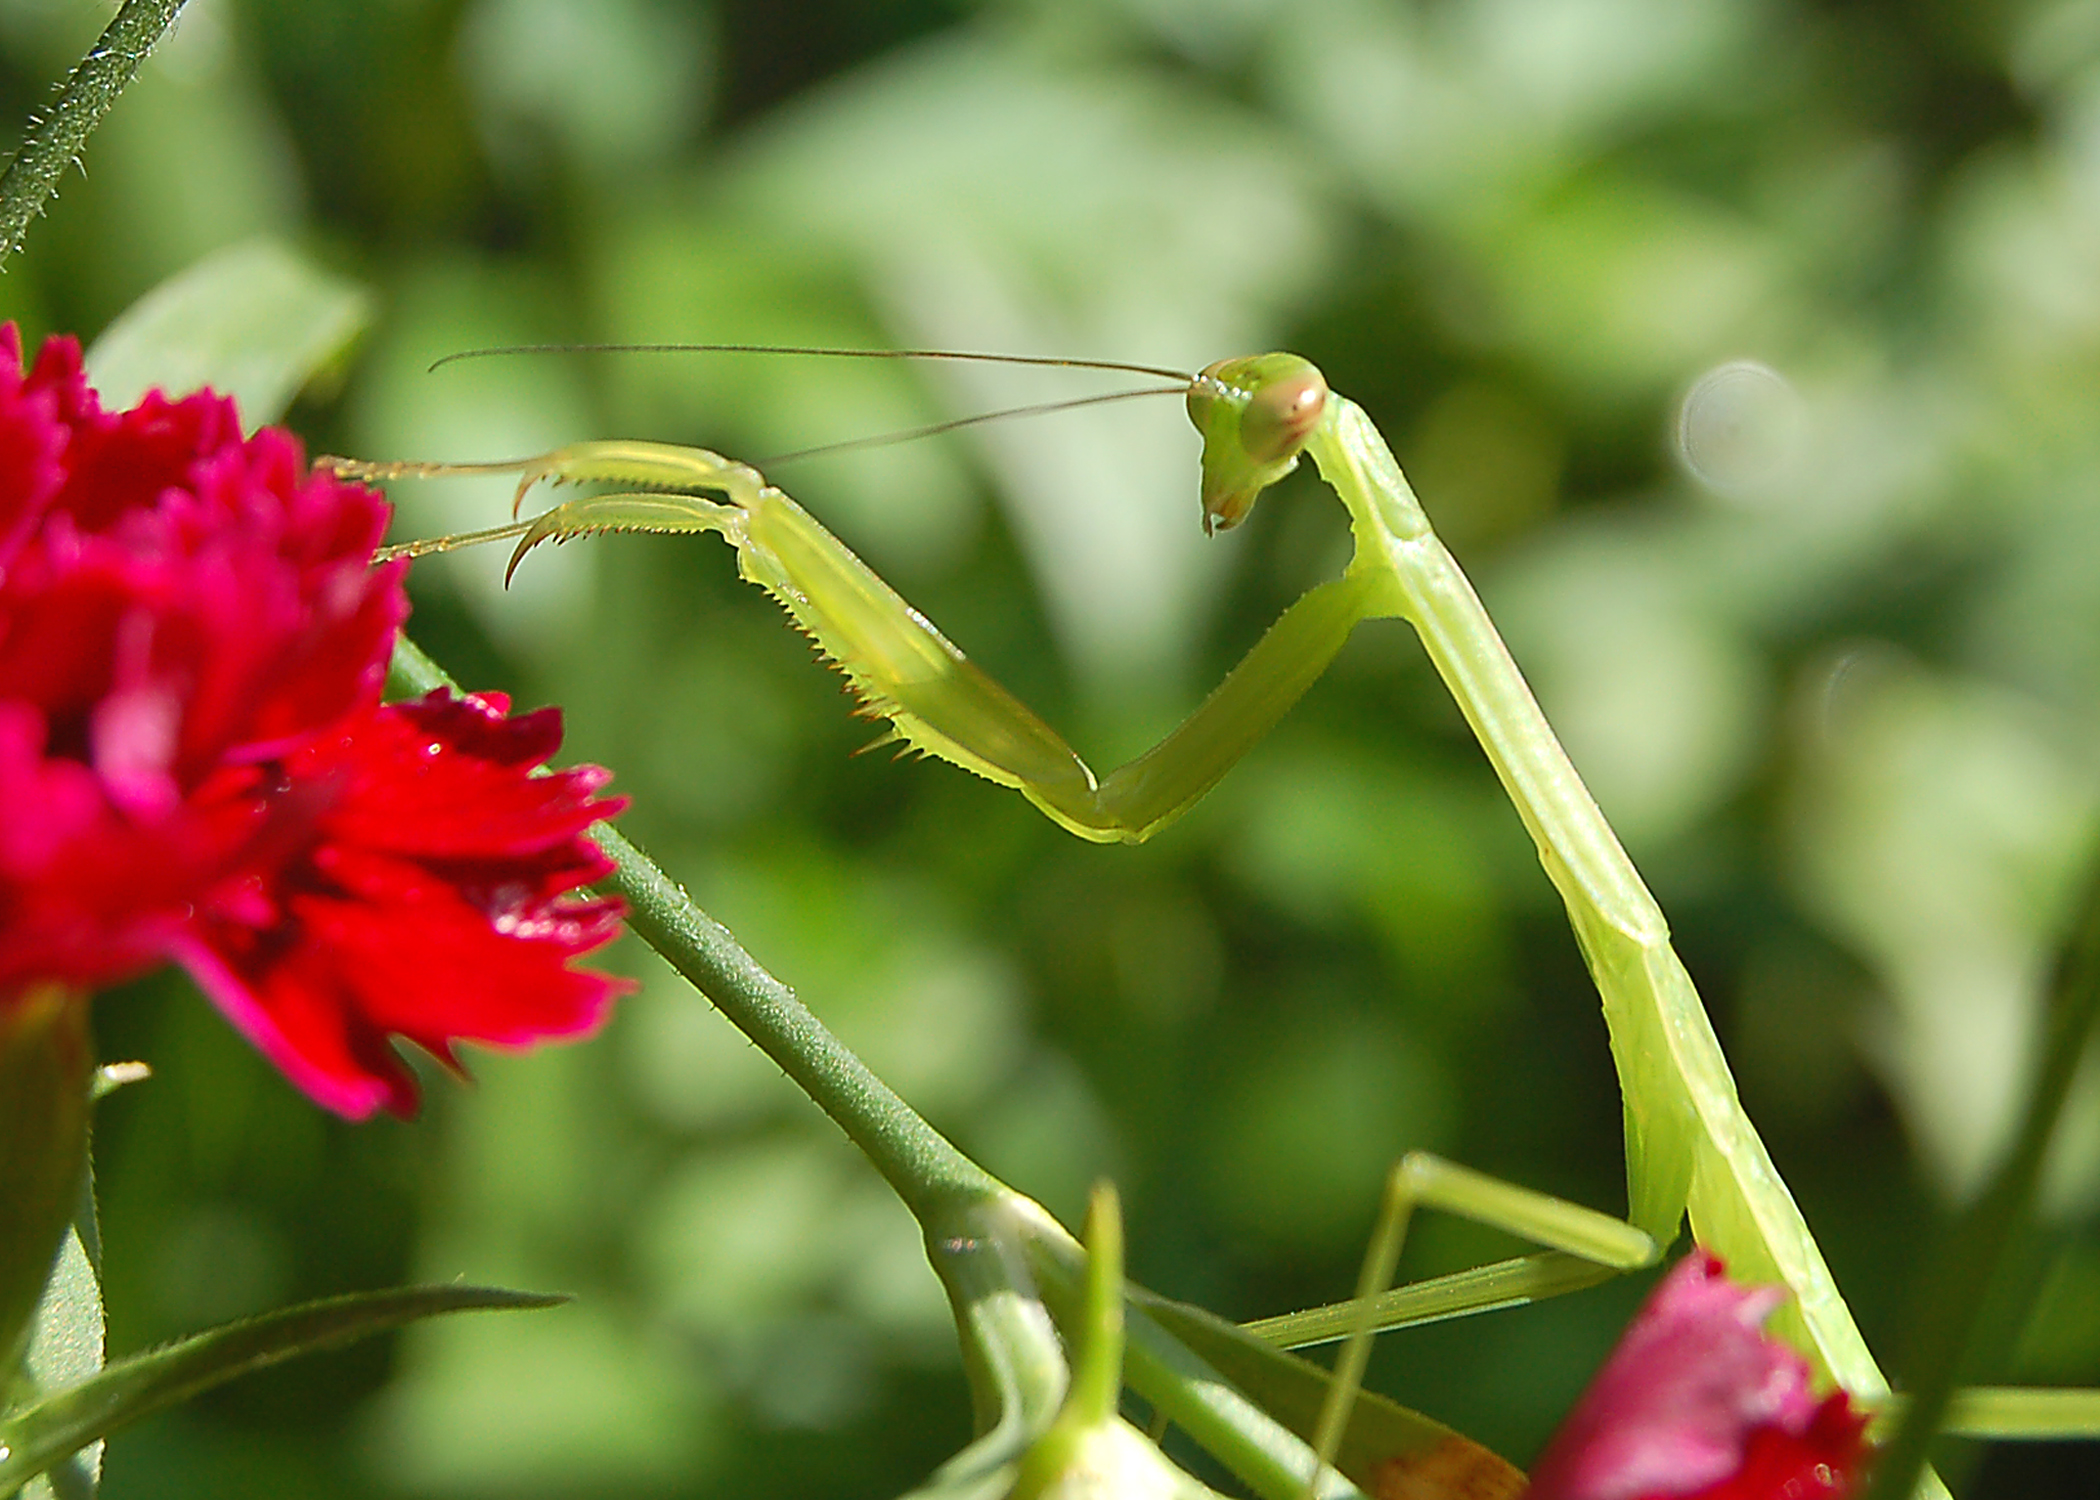 Ahhhh the Mantis has landed! I love these guys - aliens right here on earth!